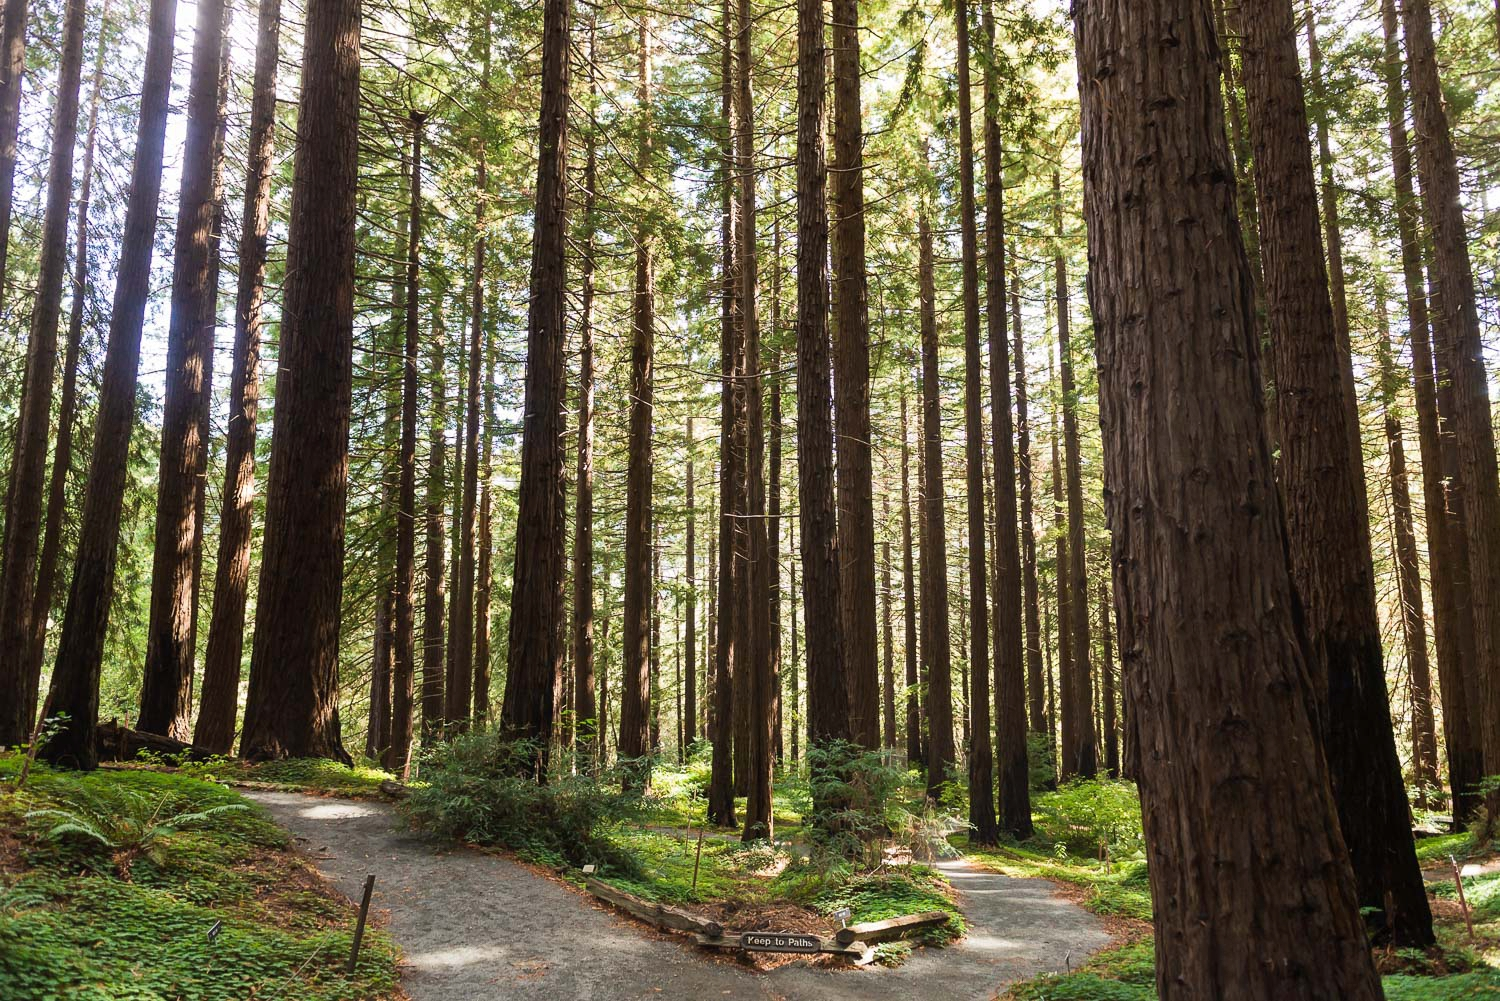 Redwood trees and a hiking trail